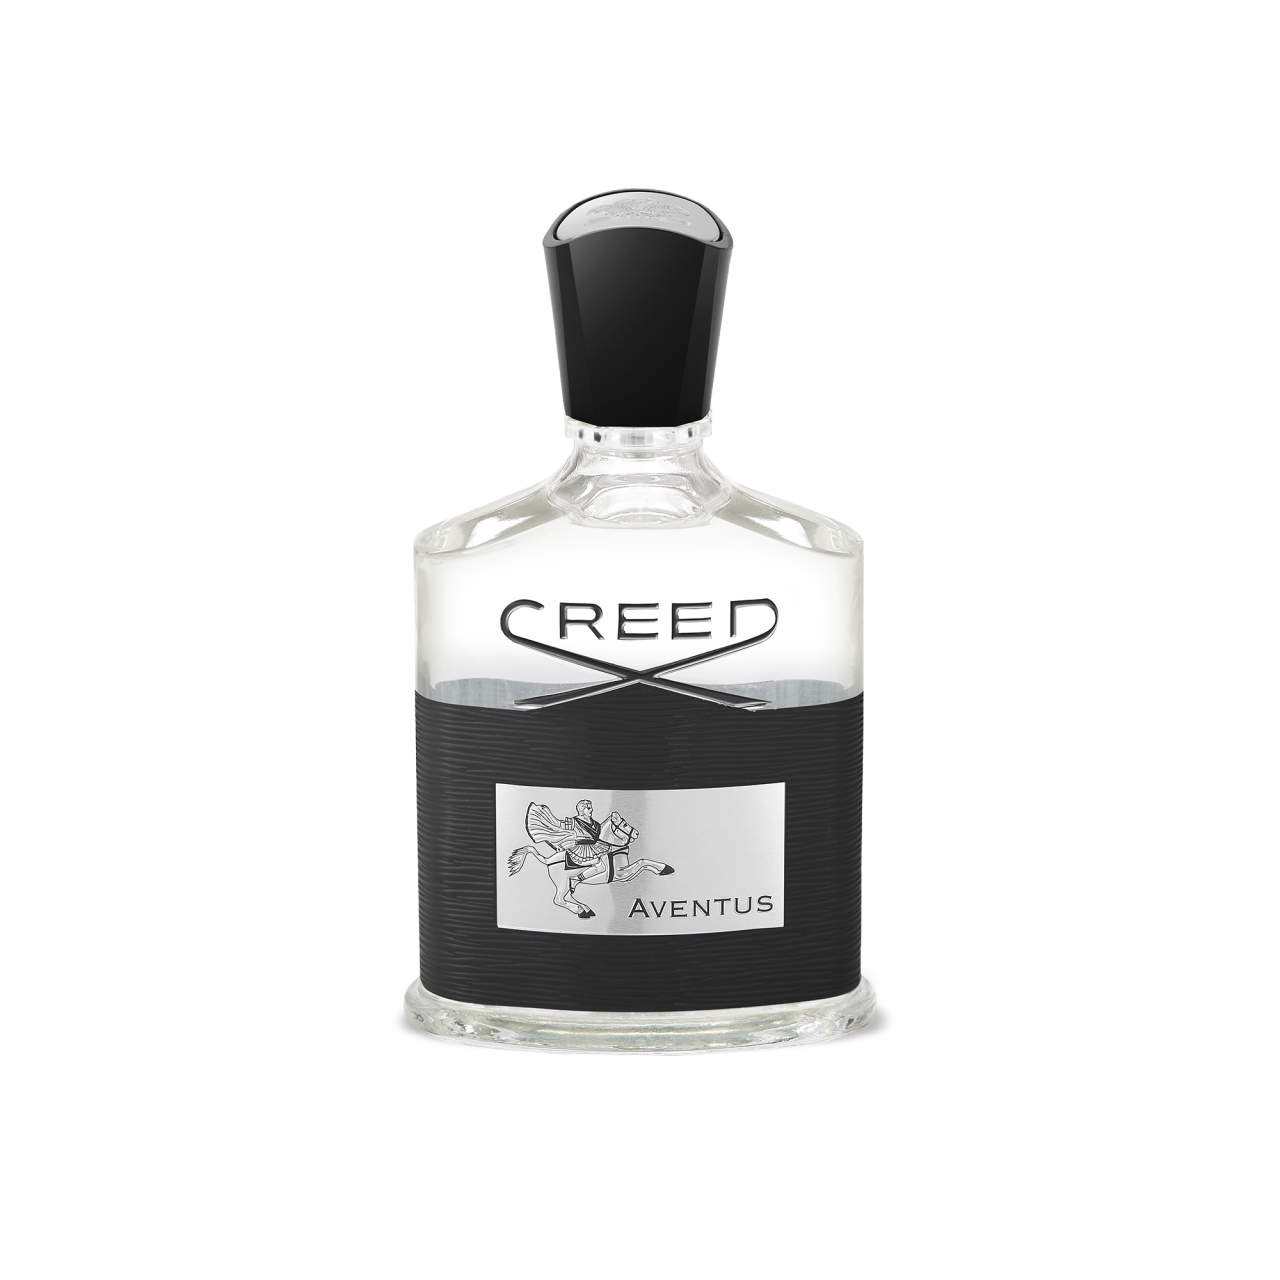 Creed Aventus Mens Fragrance Eau De Parfum Creedboutiquecom